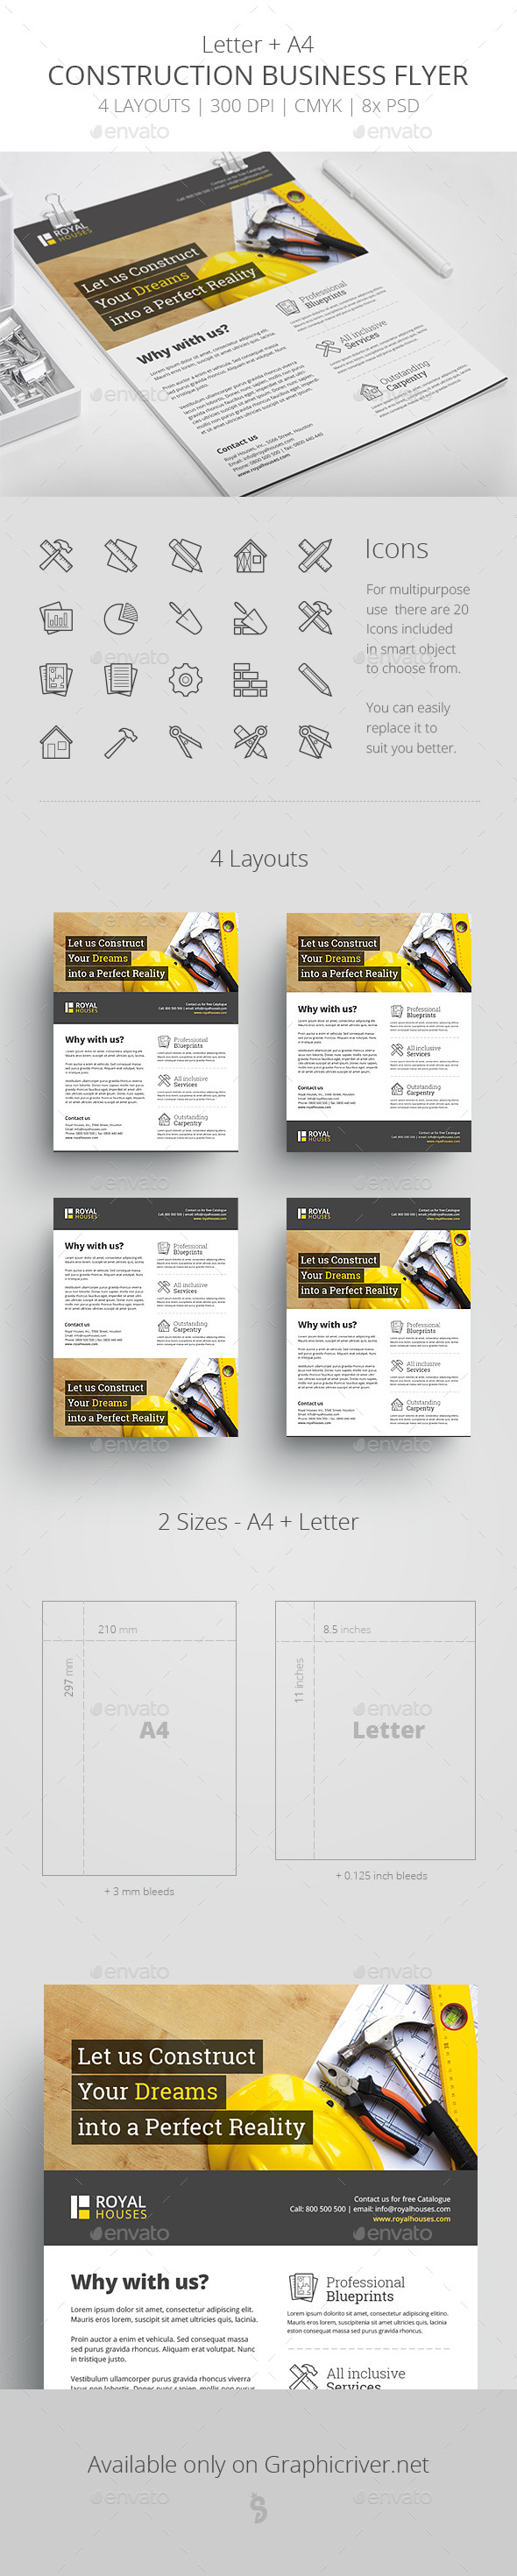 GraphicRiver Construction Business Flyer Letter & A4 11111307